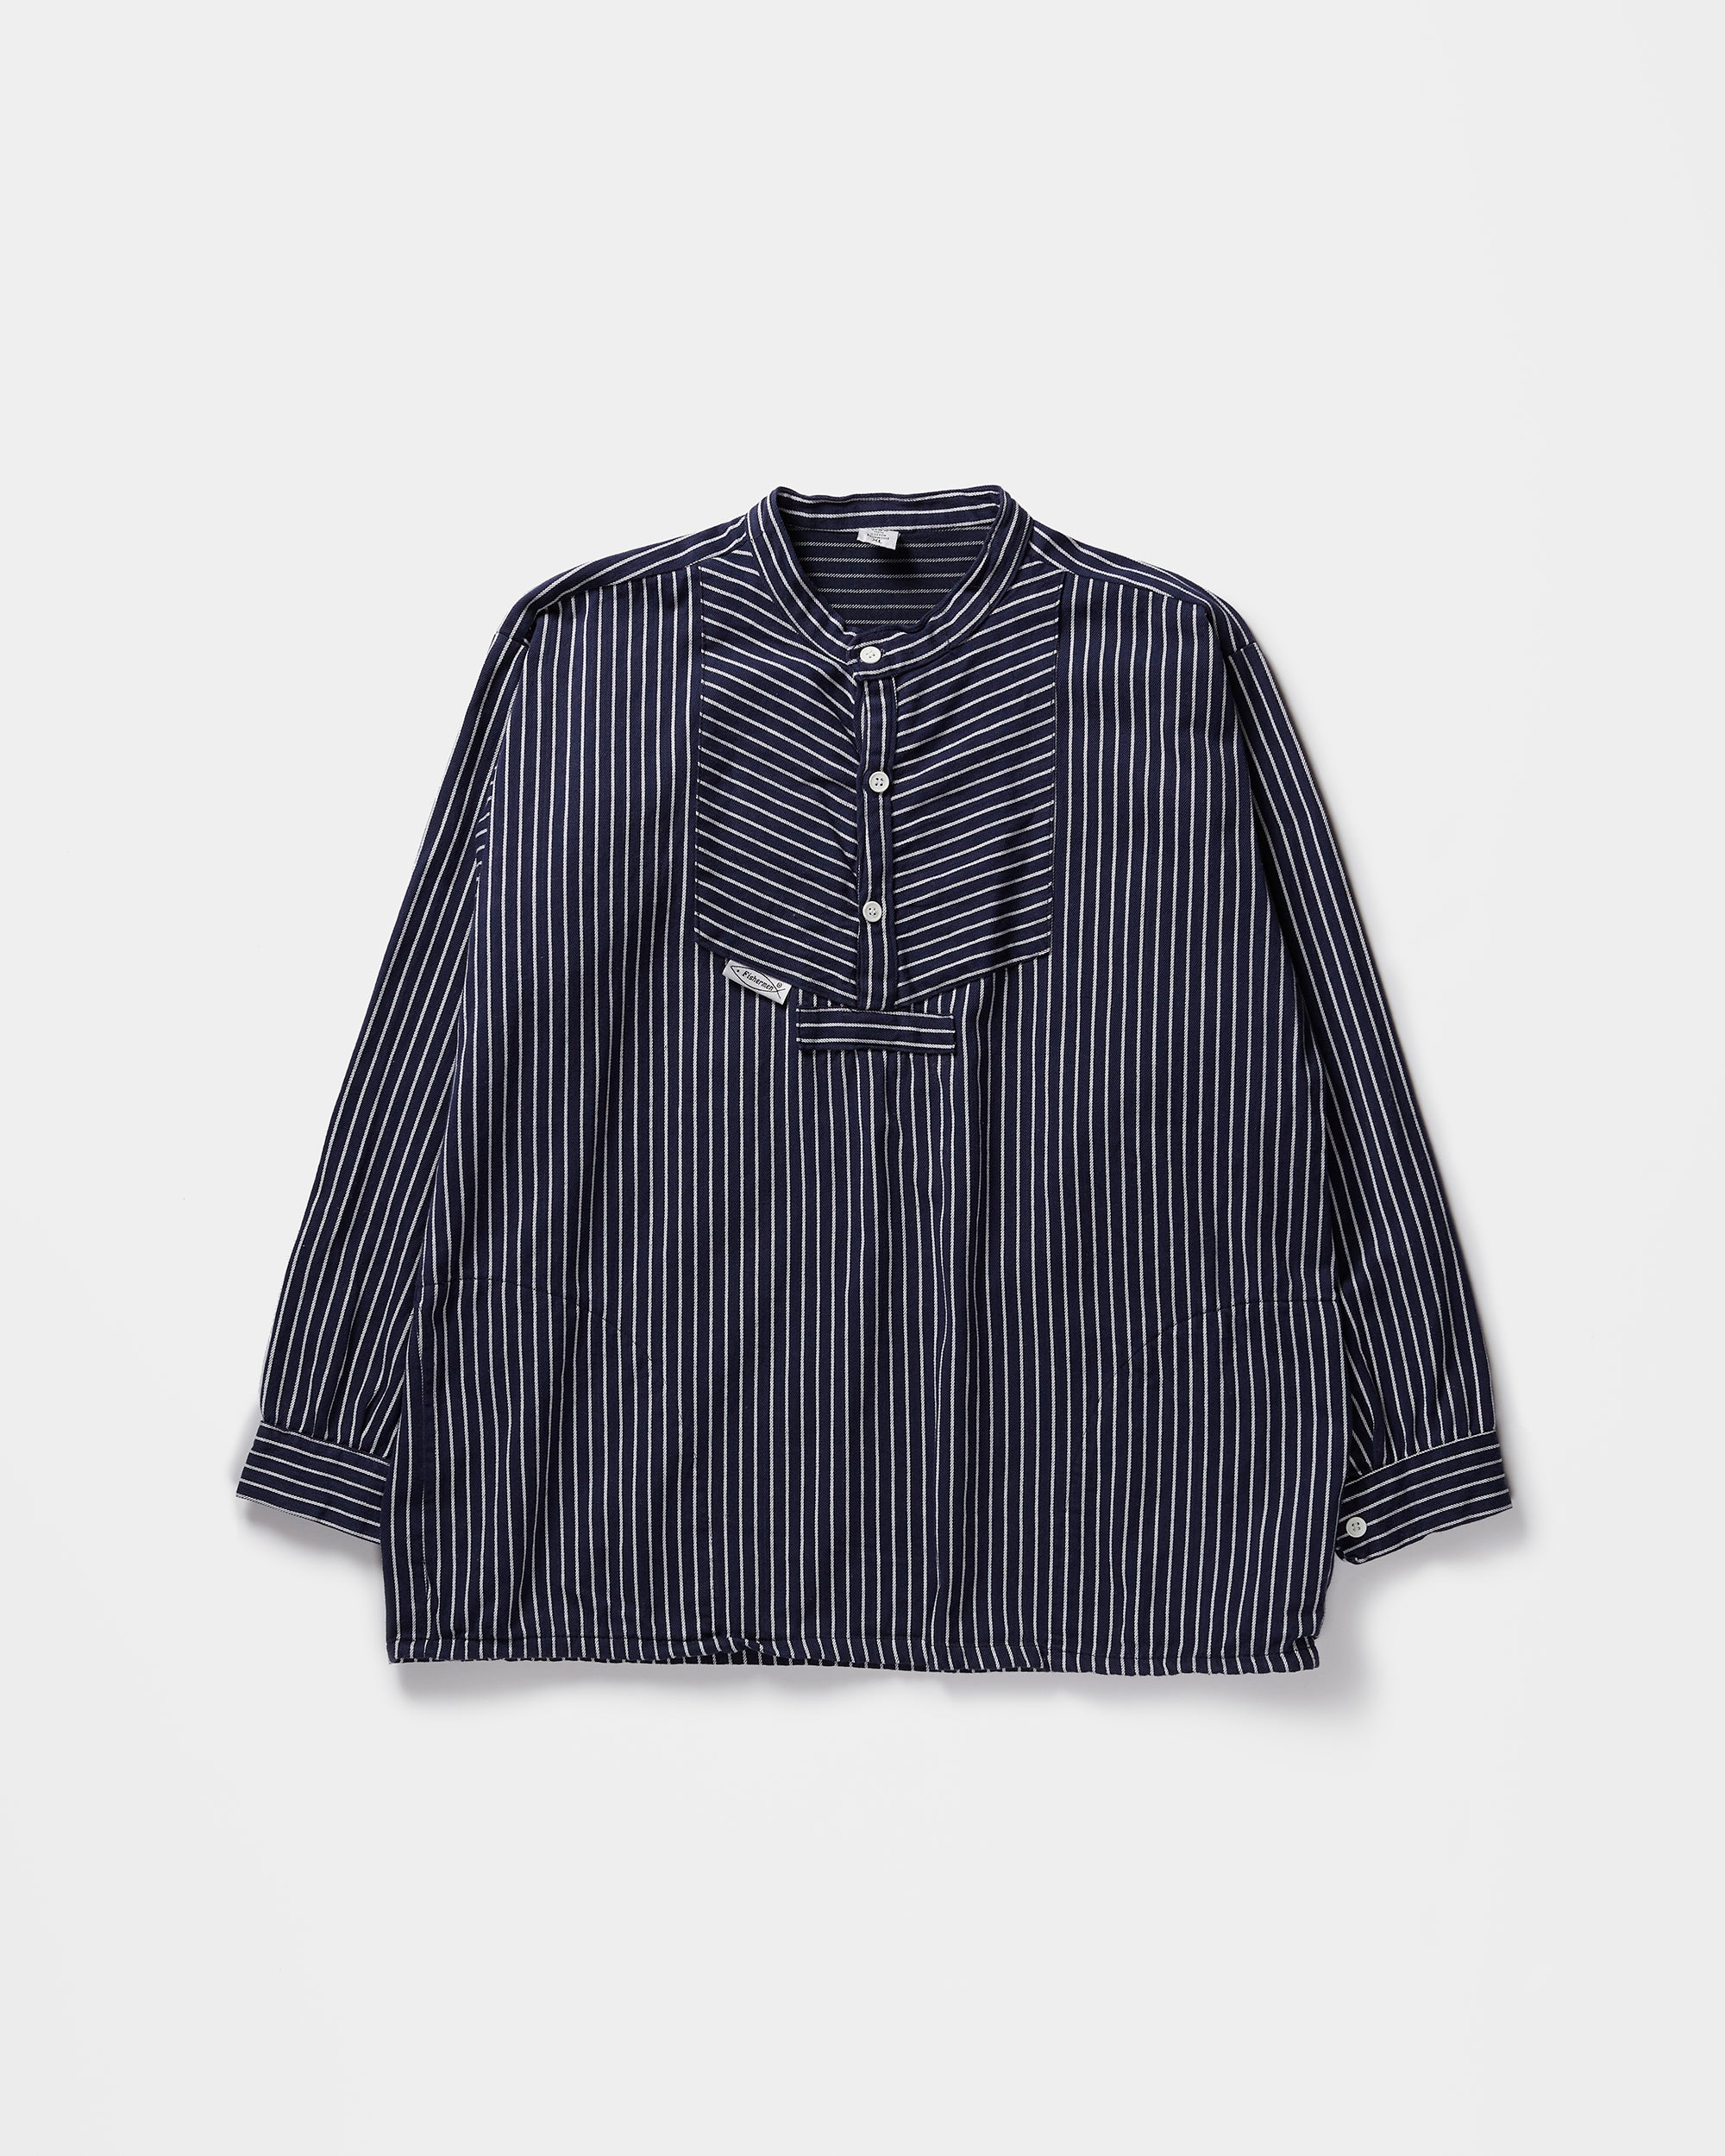 Vintage European Fisherman Shirts